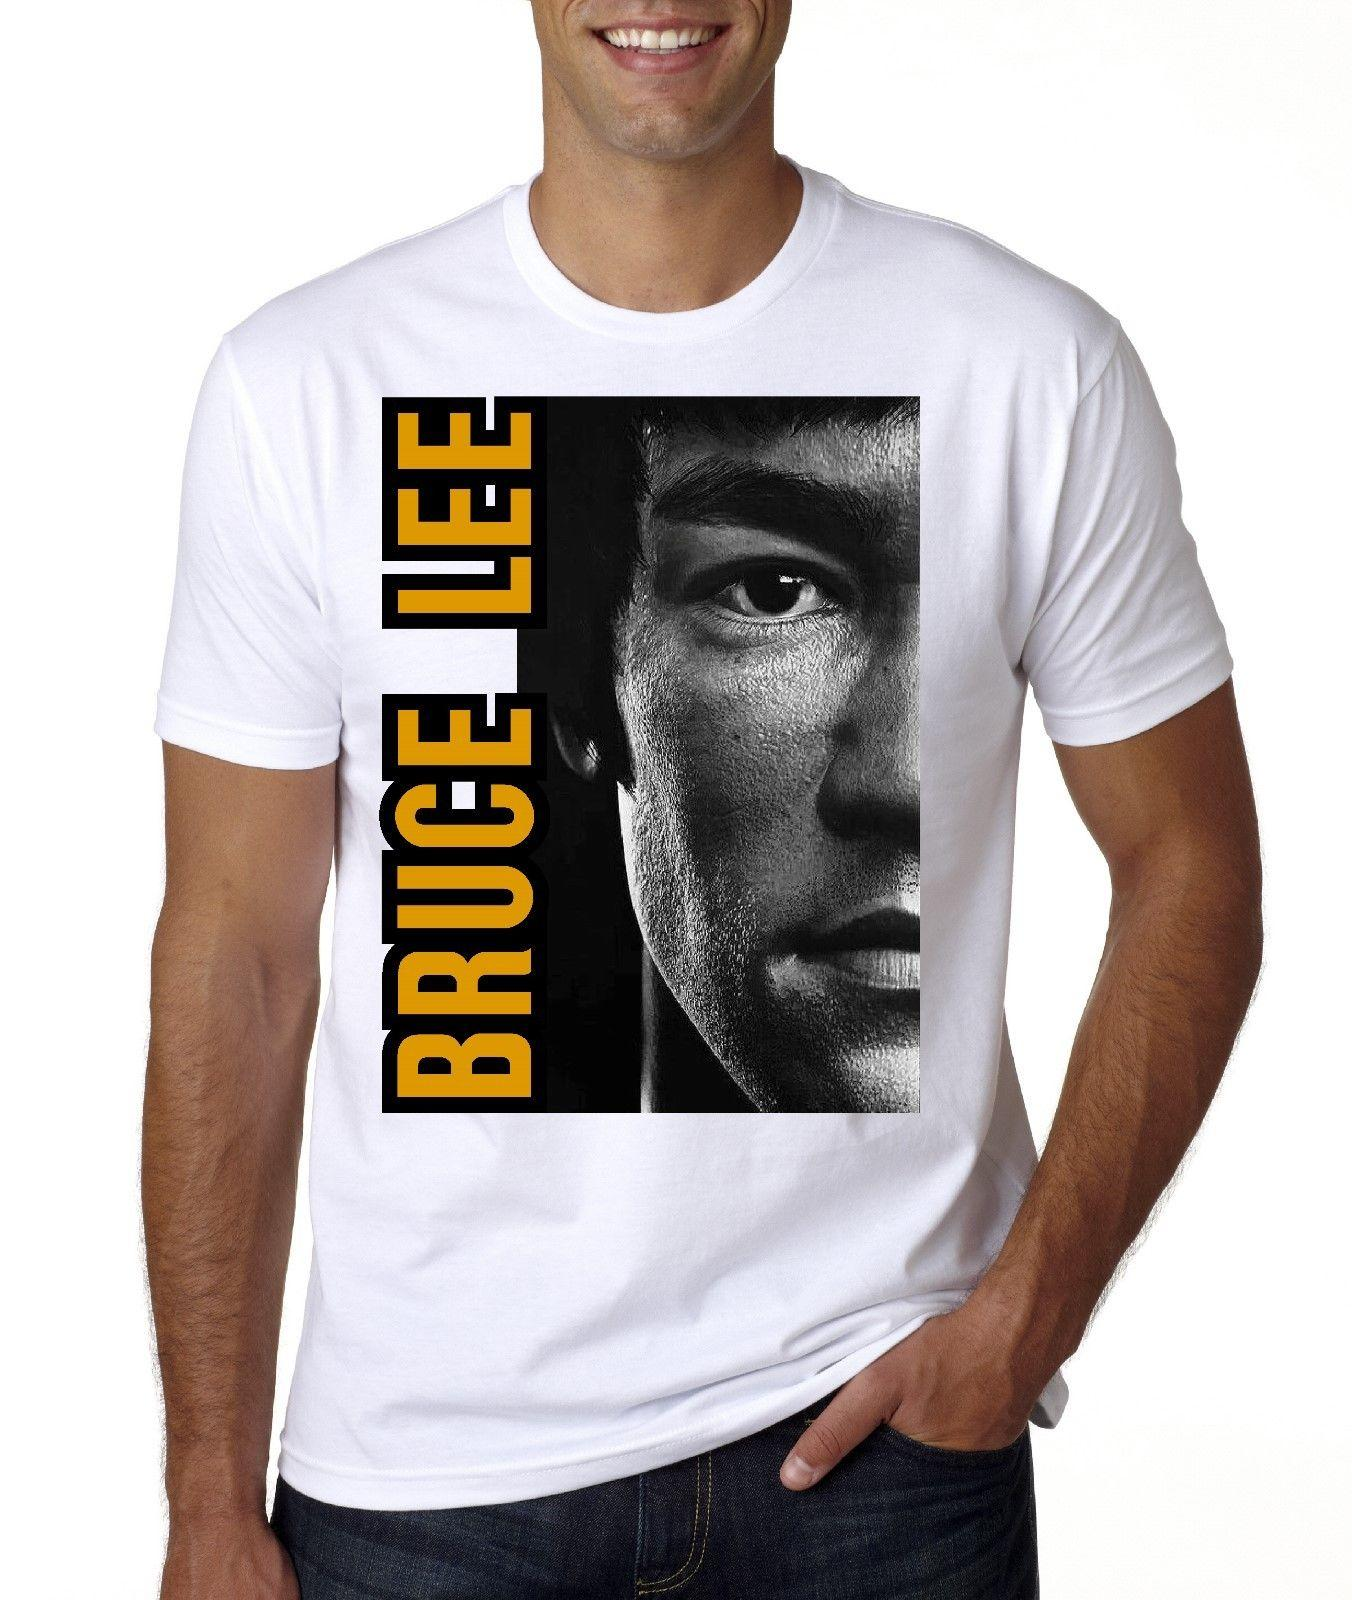 NEW BRUCE LEE T SHIRT SIZES FROM MED 3XL Design 1 T Shirt Good T Shirt  Sites From Perfecttshirts34 431afb4b3